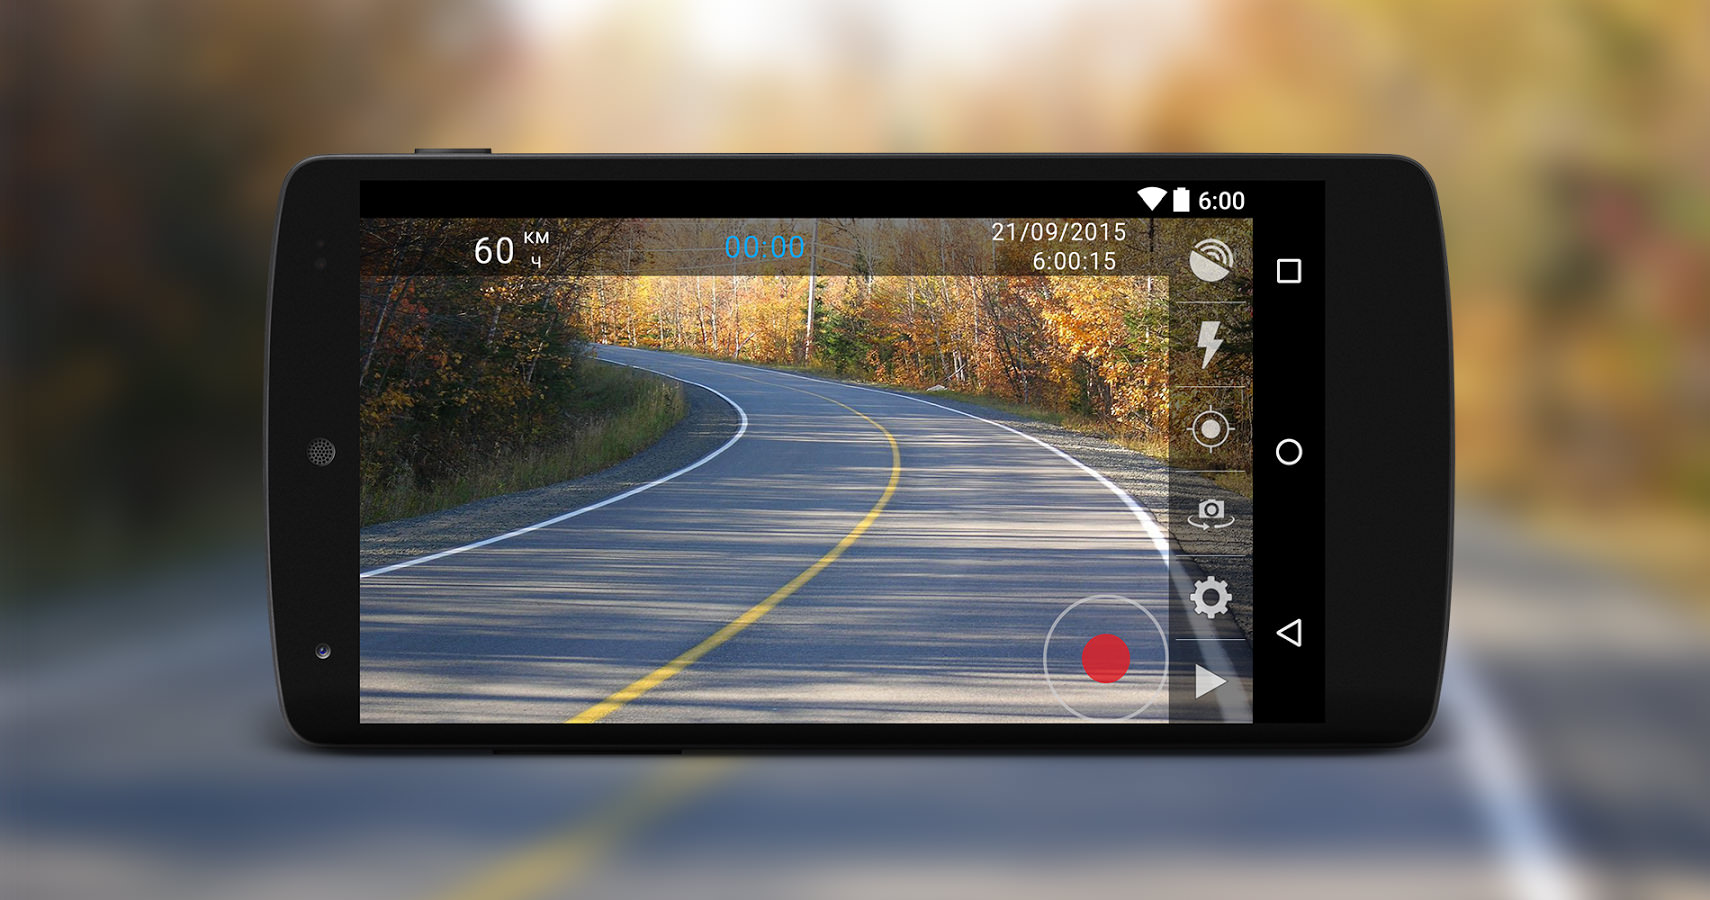 7 Best Dash Cam Apps For Android Smartphone Pros Cons